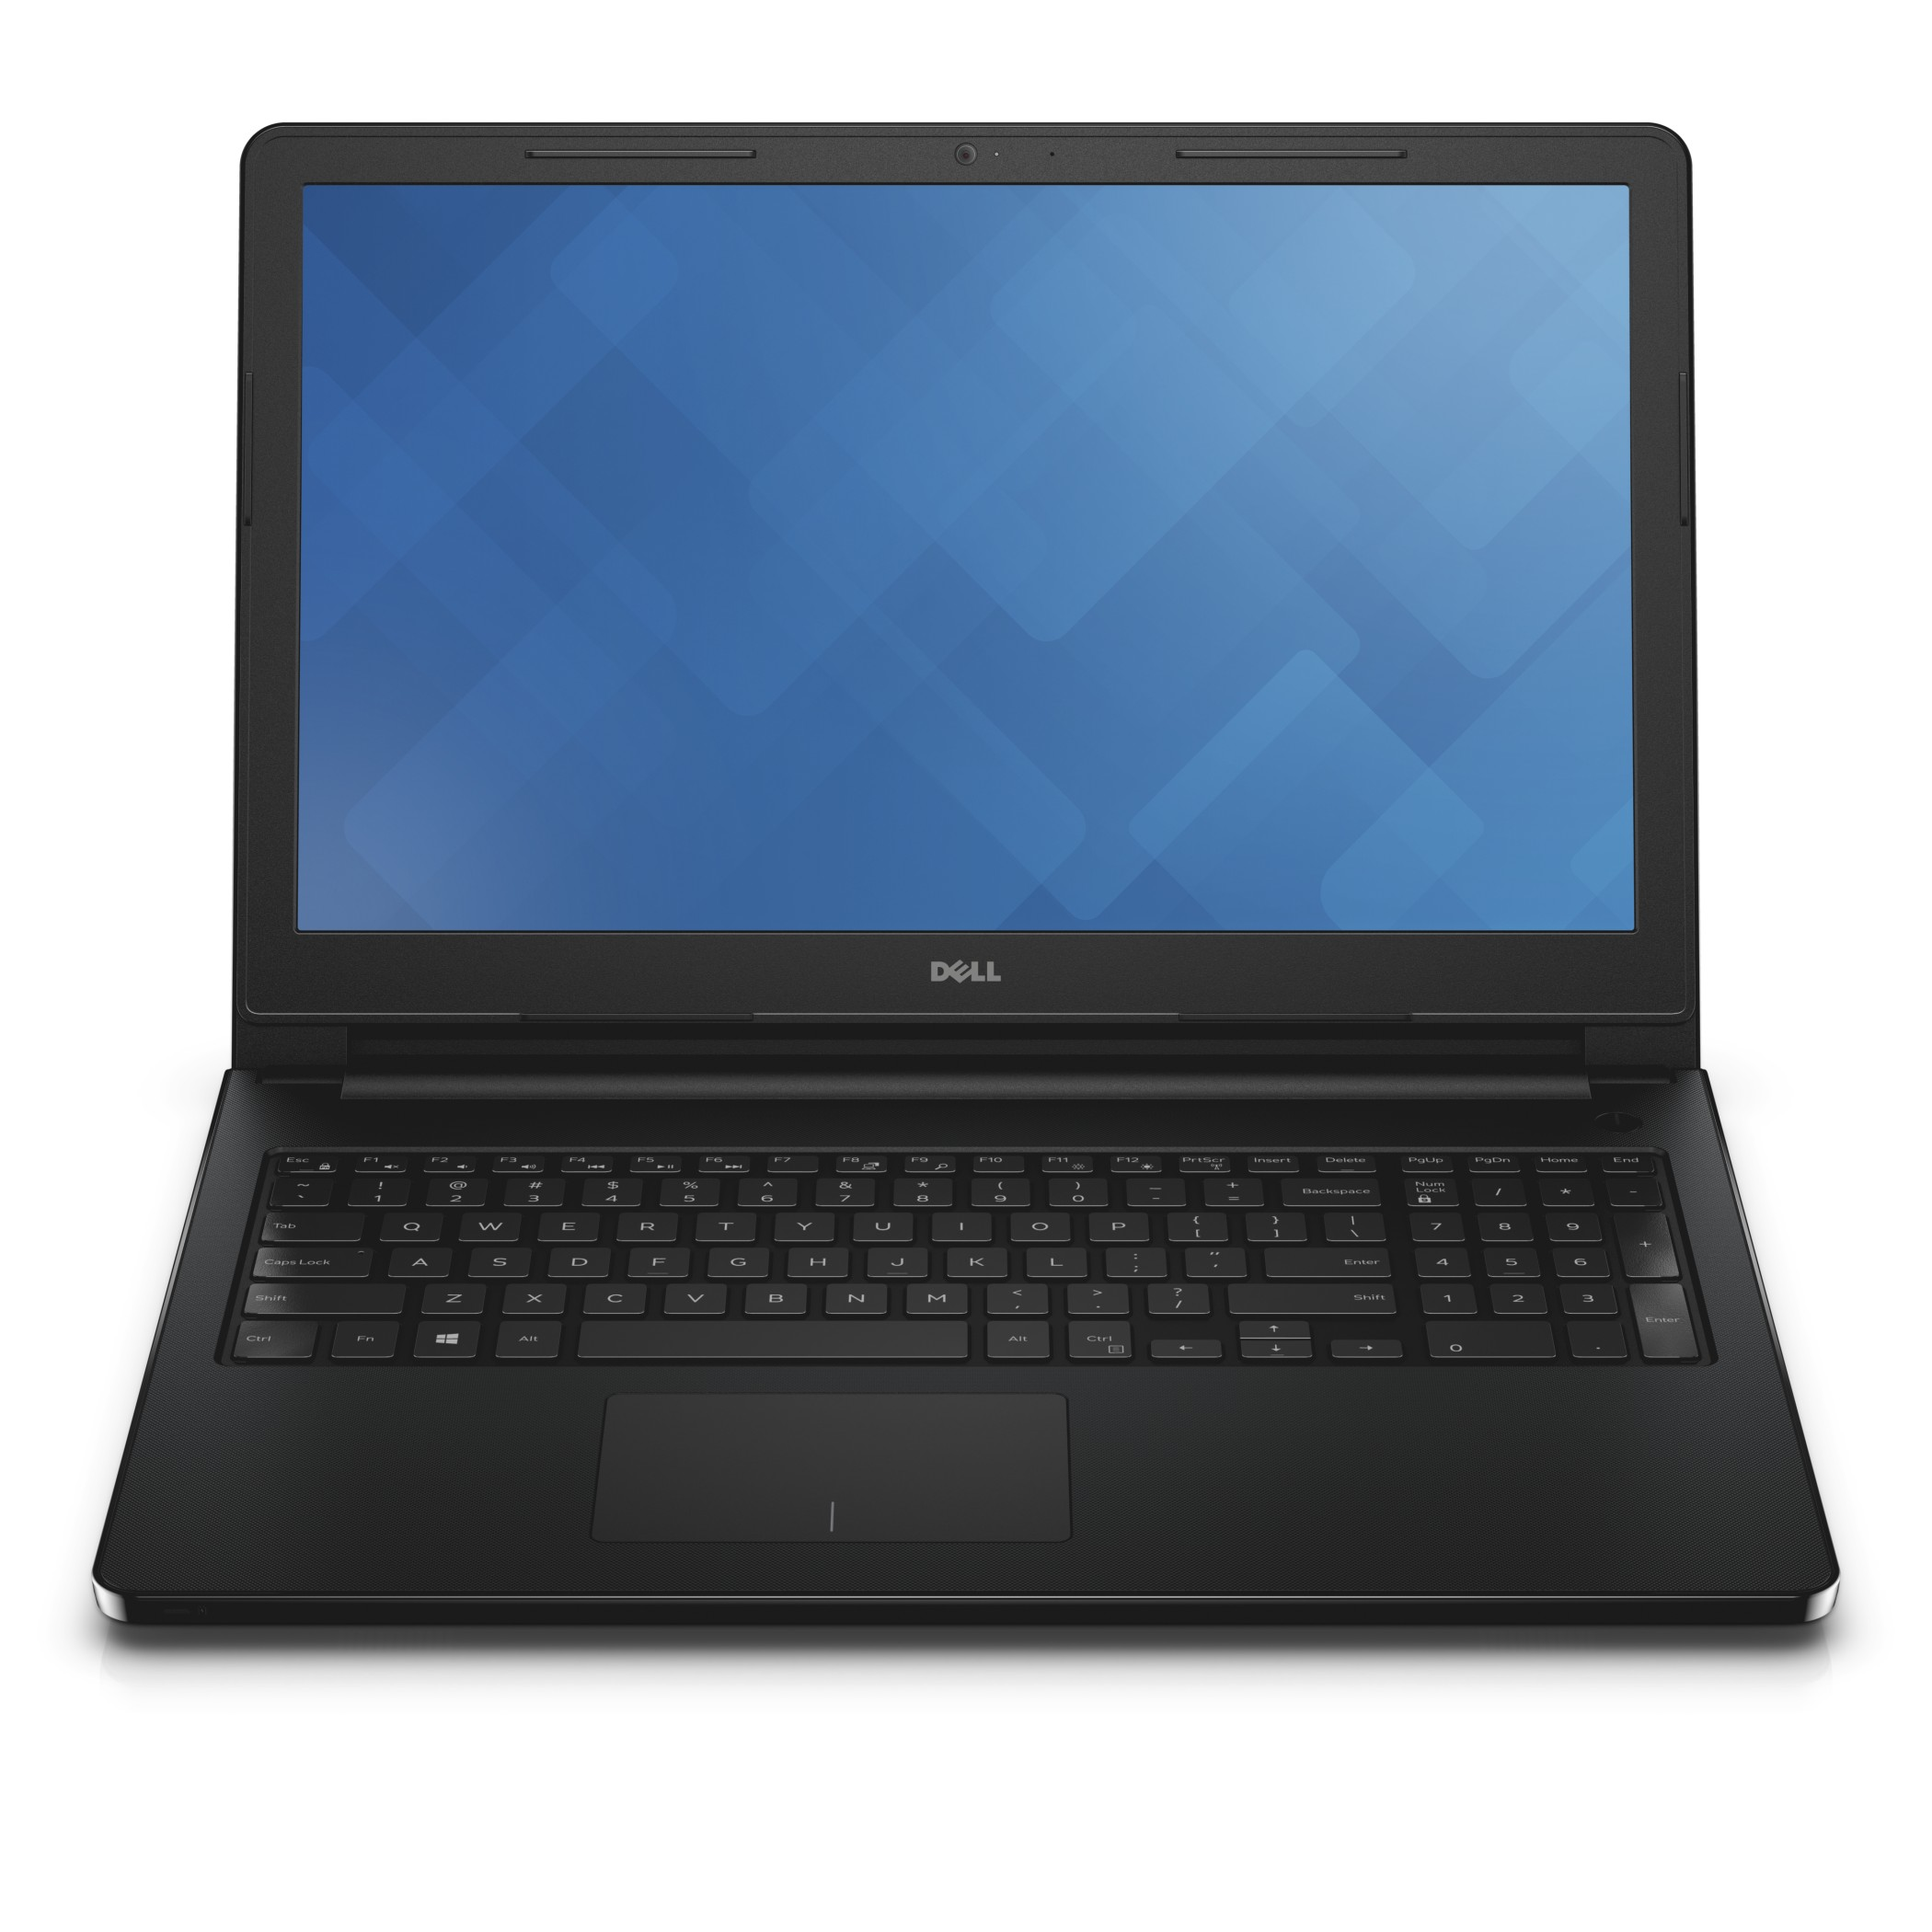 Notebook Dell Inspiron 3552 15.6 HD Intel Celeron N3060 RAM 4GB HDD 500GB Linux Negru